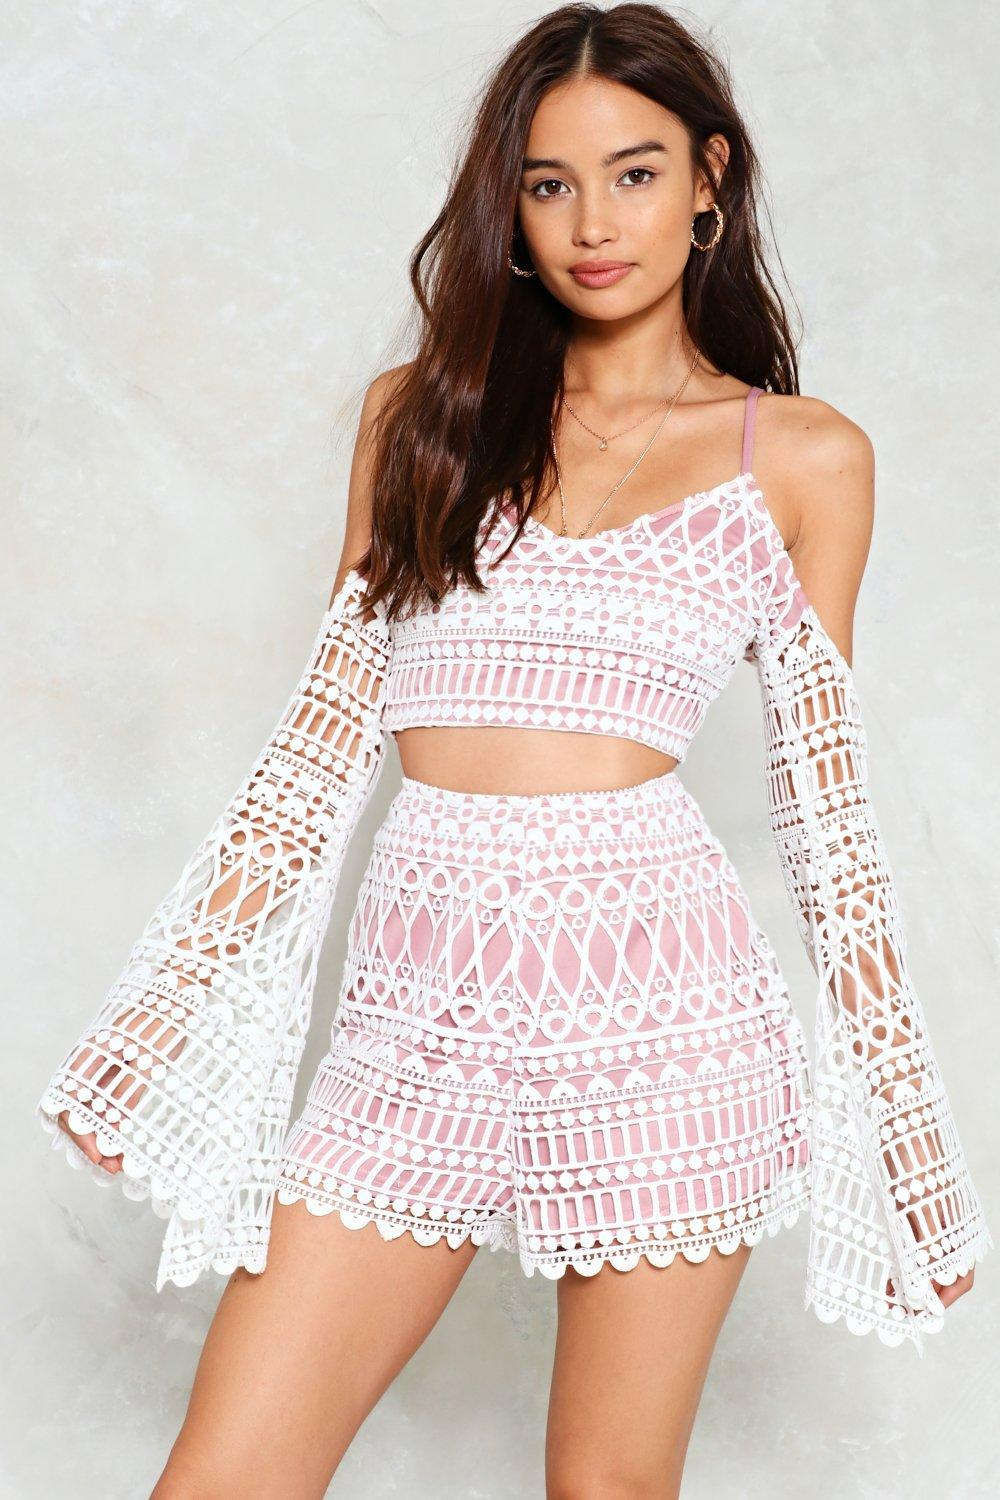 a8c42857980 Lover Undercover Crochet Top and Shorts Set | Shop Clothes at Nasty Gal!